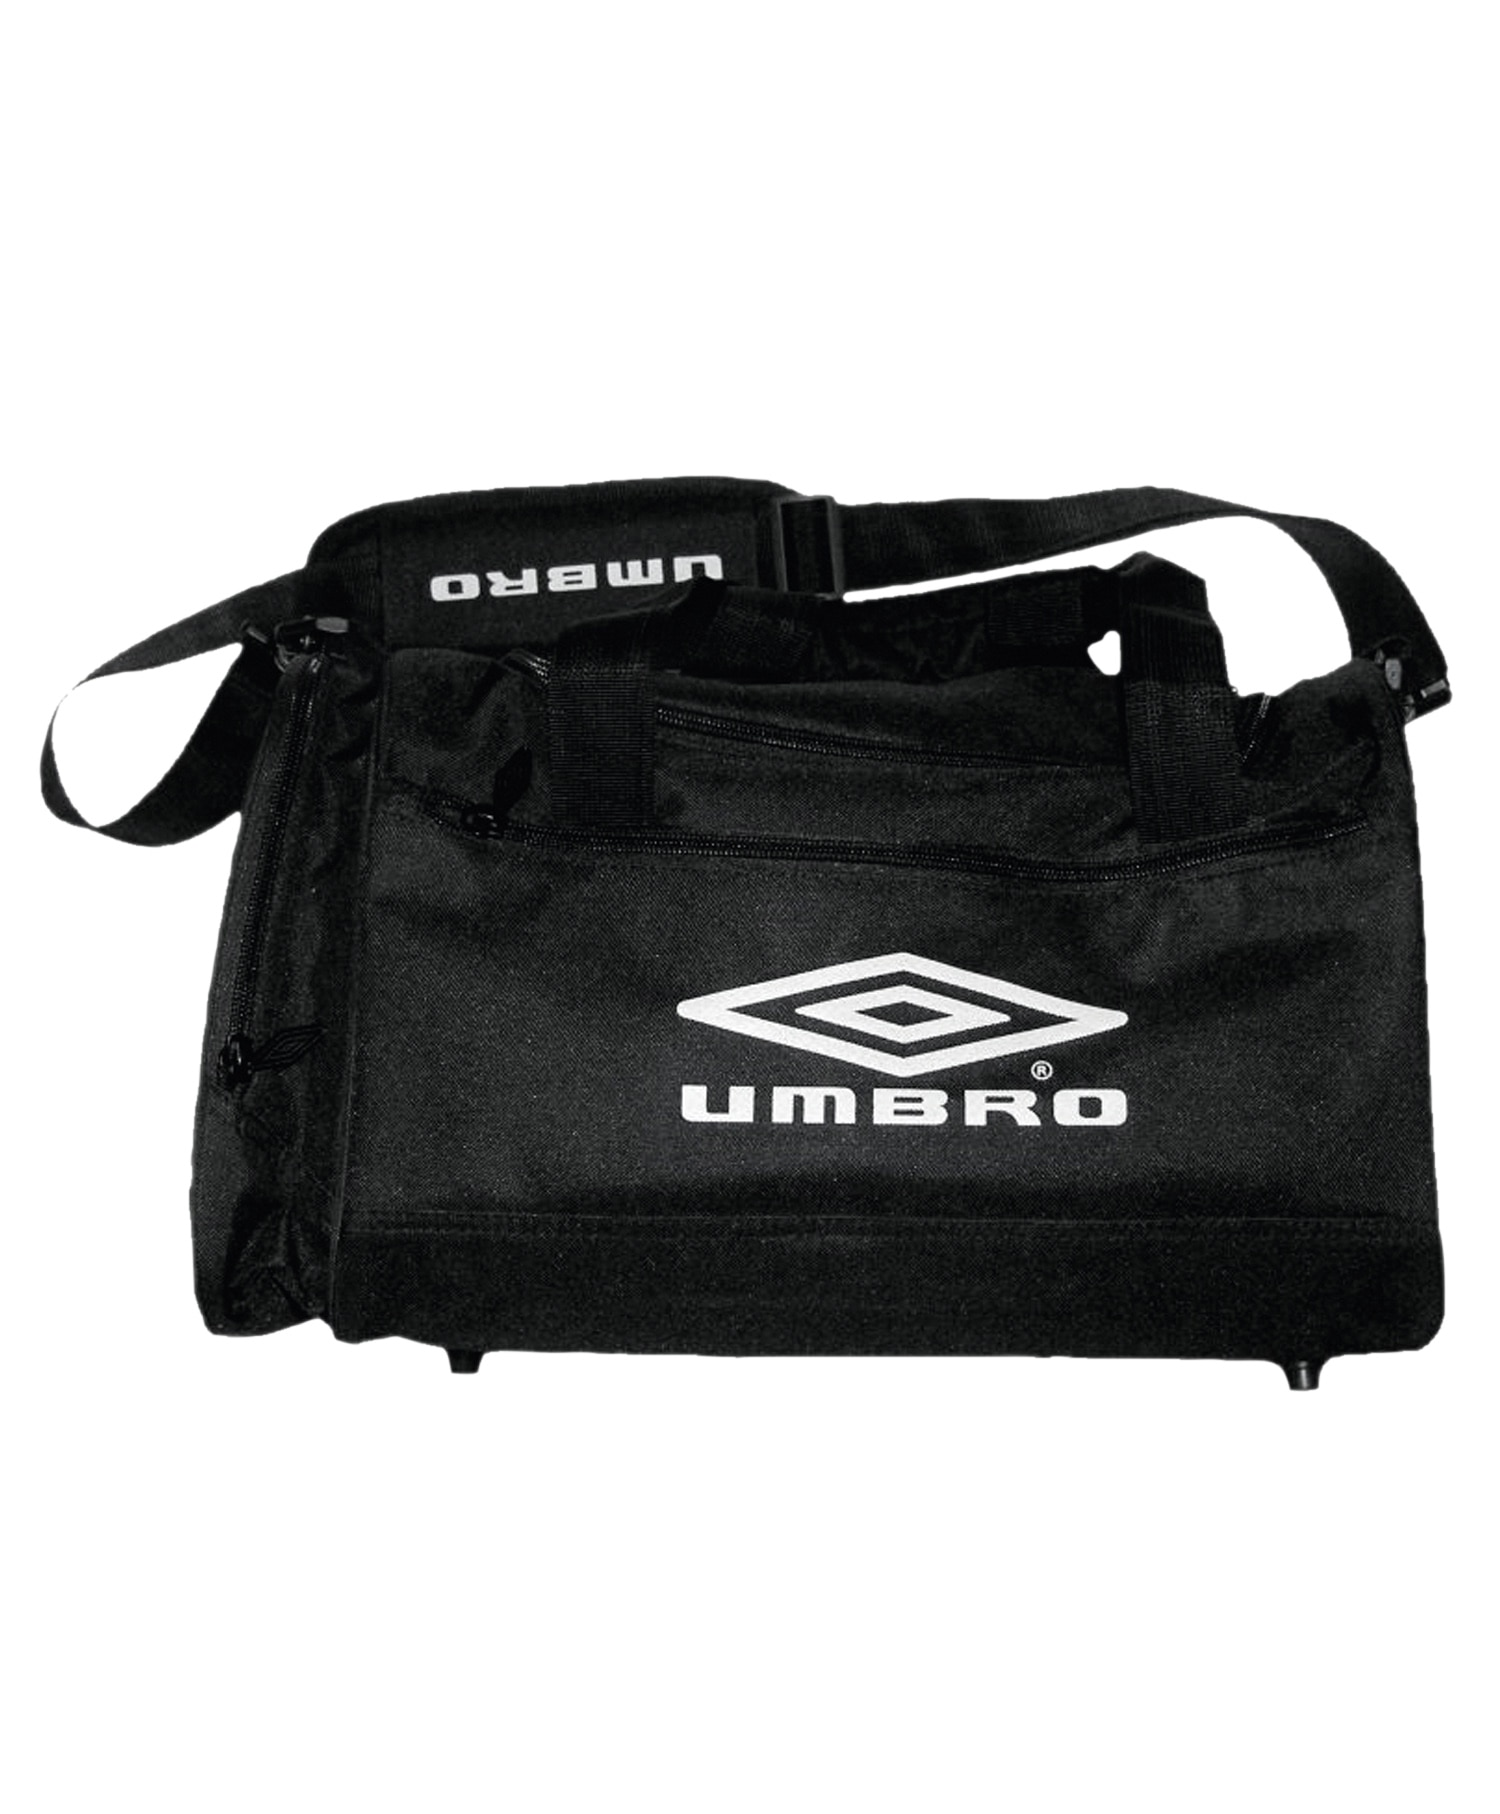 Umbro Diamond Bag JR